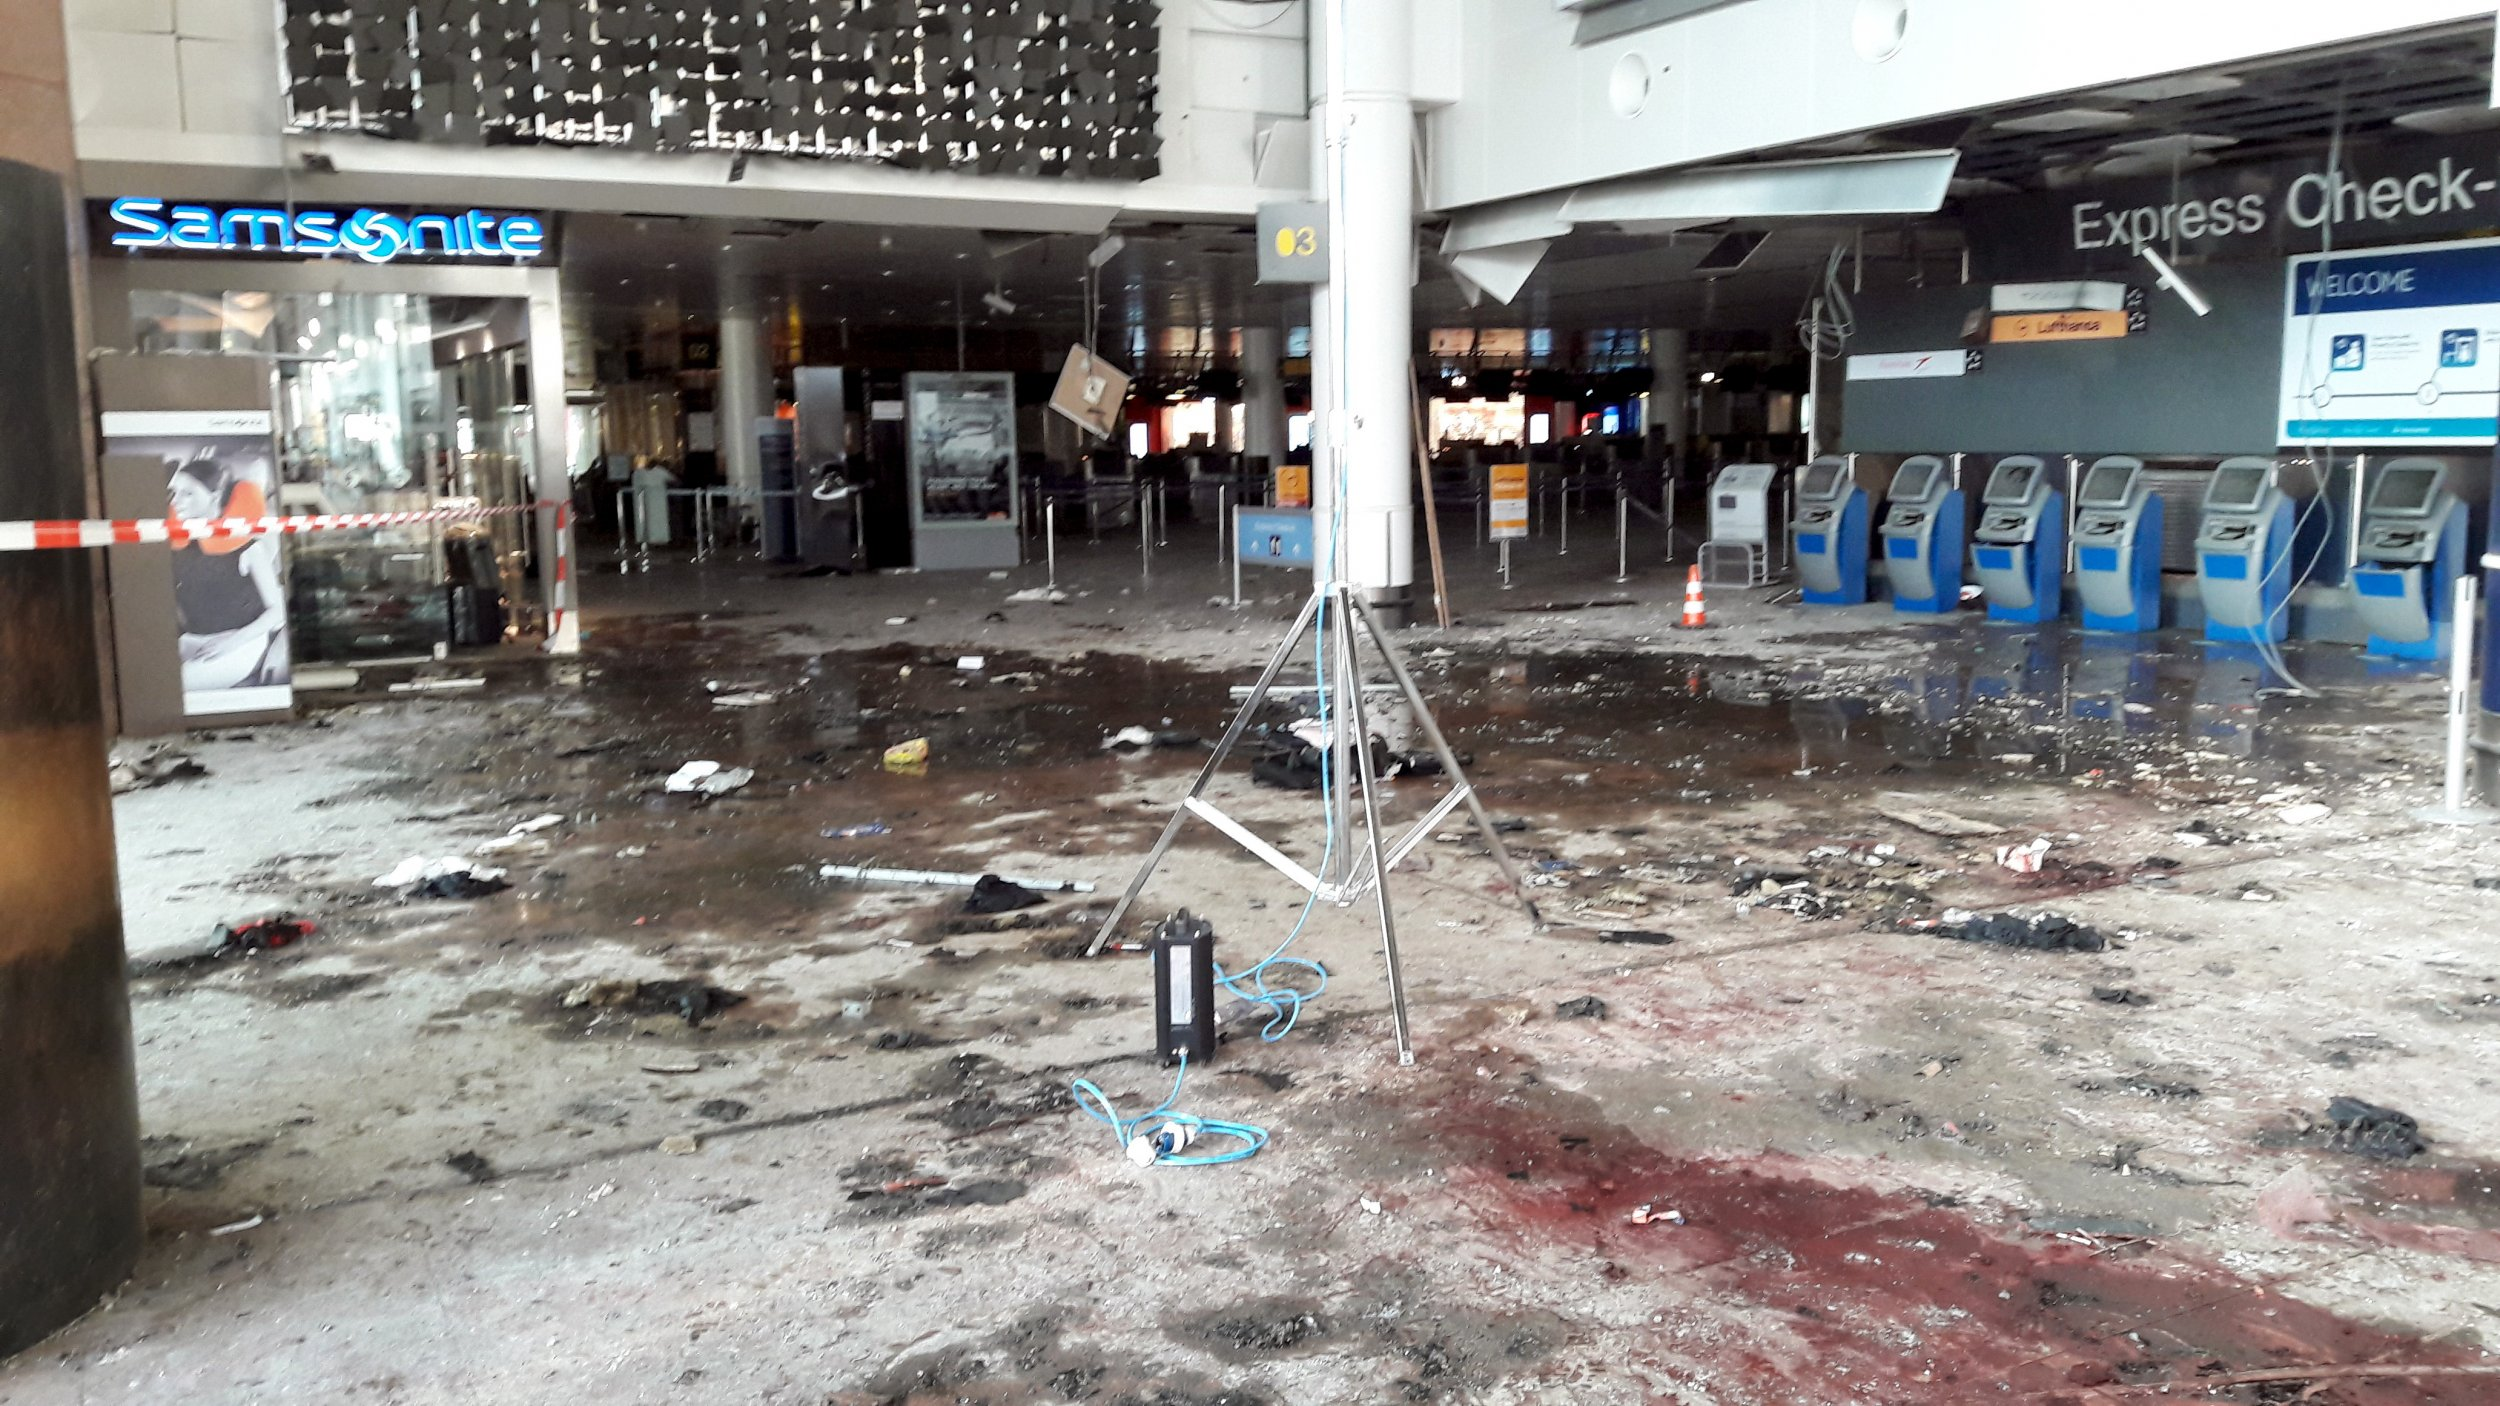 The aftermath of the Brussels airport bombing.